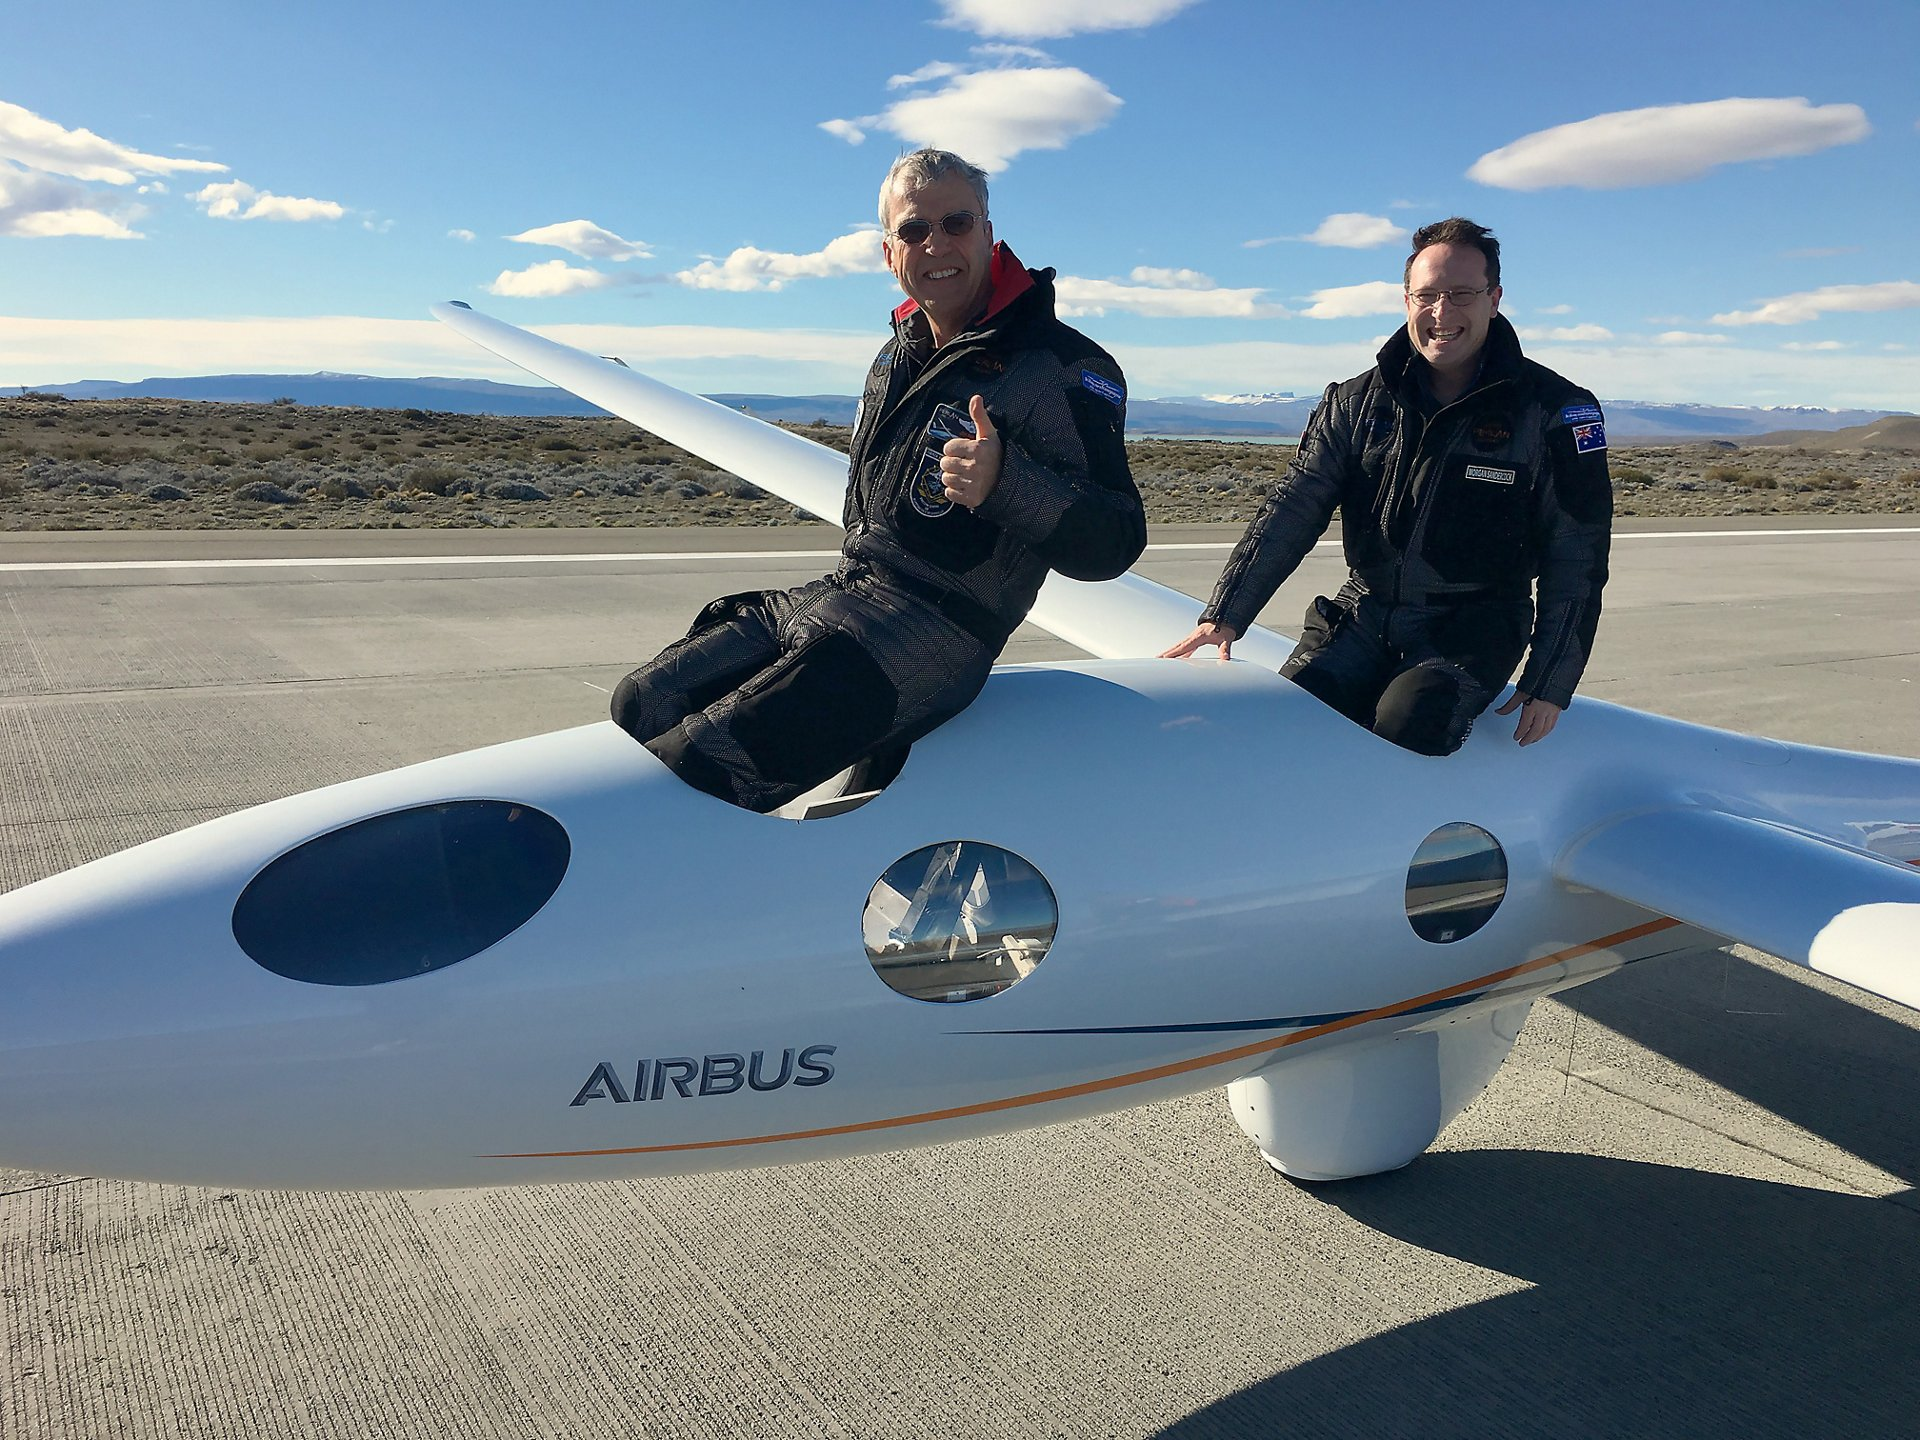 "Airbus Perlan Mission II pilots Jim Payne (left) and Morgan Sandercock emerge from the cockpit after setting a new glider world altitude record Sept. 3, soaring to 52,172 feet in the pressurized craft that was carried aloft by rare ""stratospheric mountain waves"" in the Andes Mountains near El Calafate, Argentina. Photo by Jackie Payne, Perlan Project."